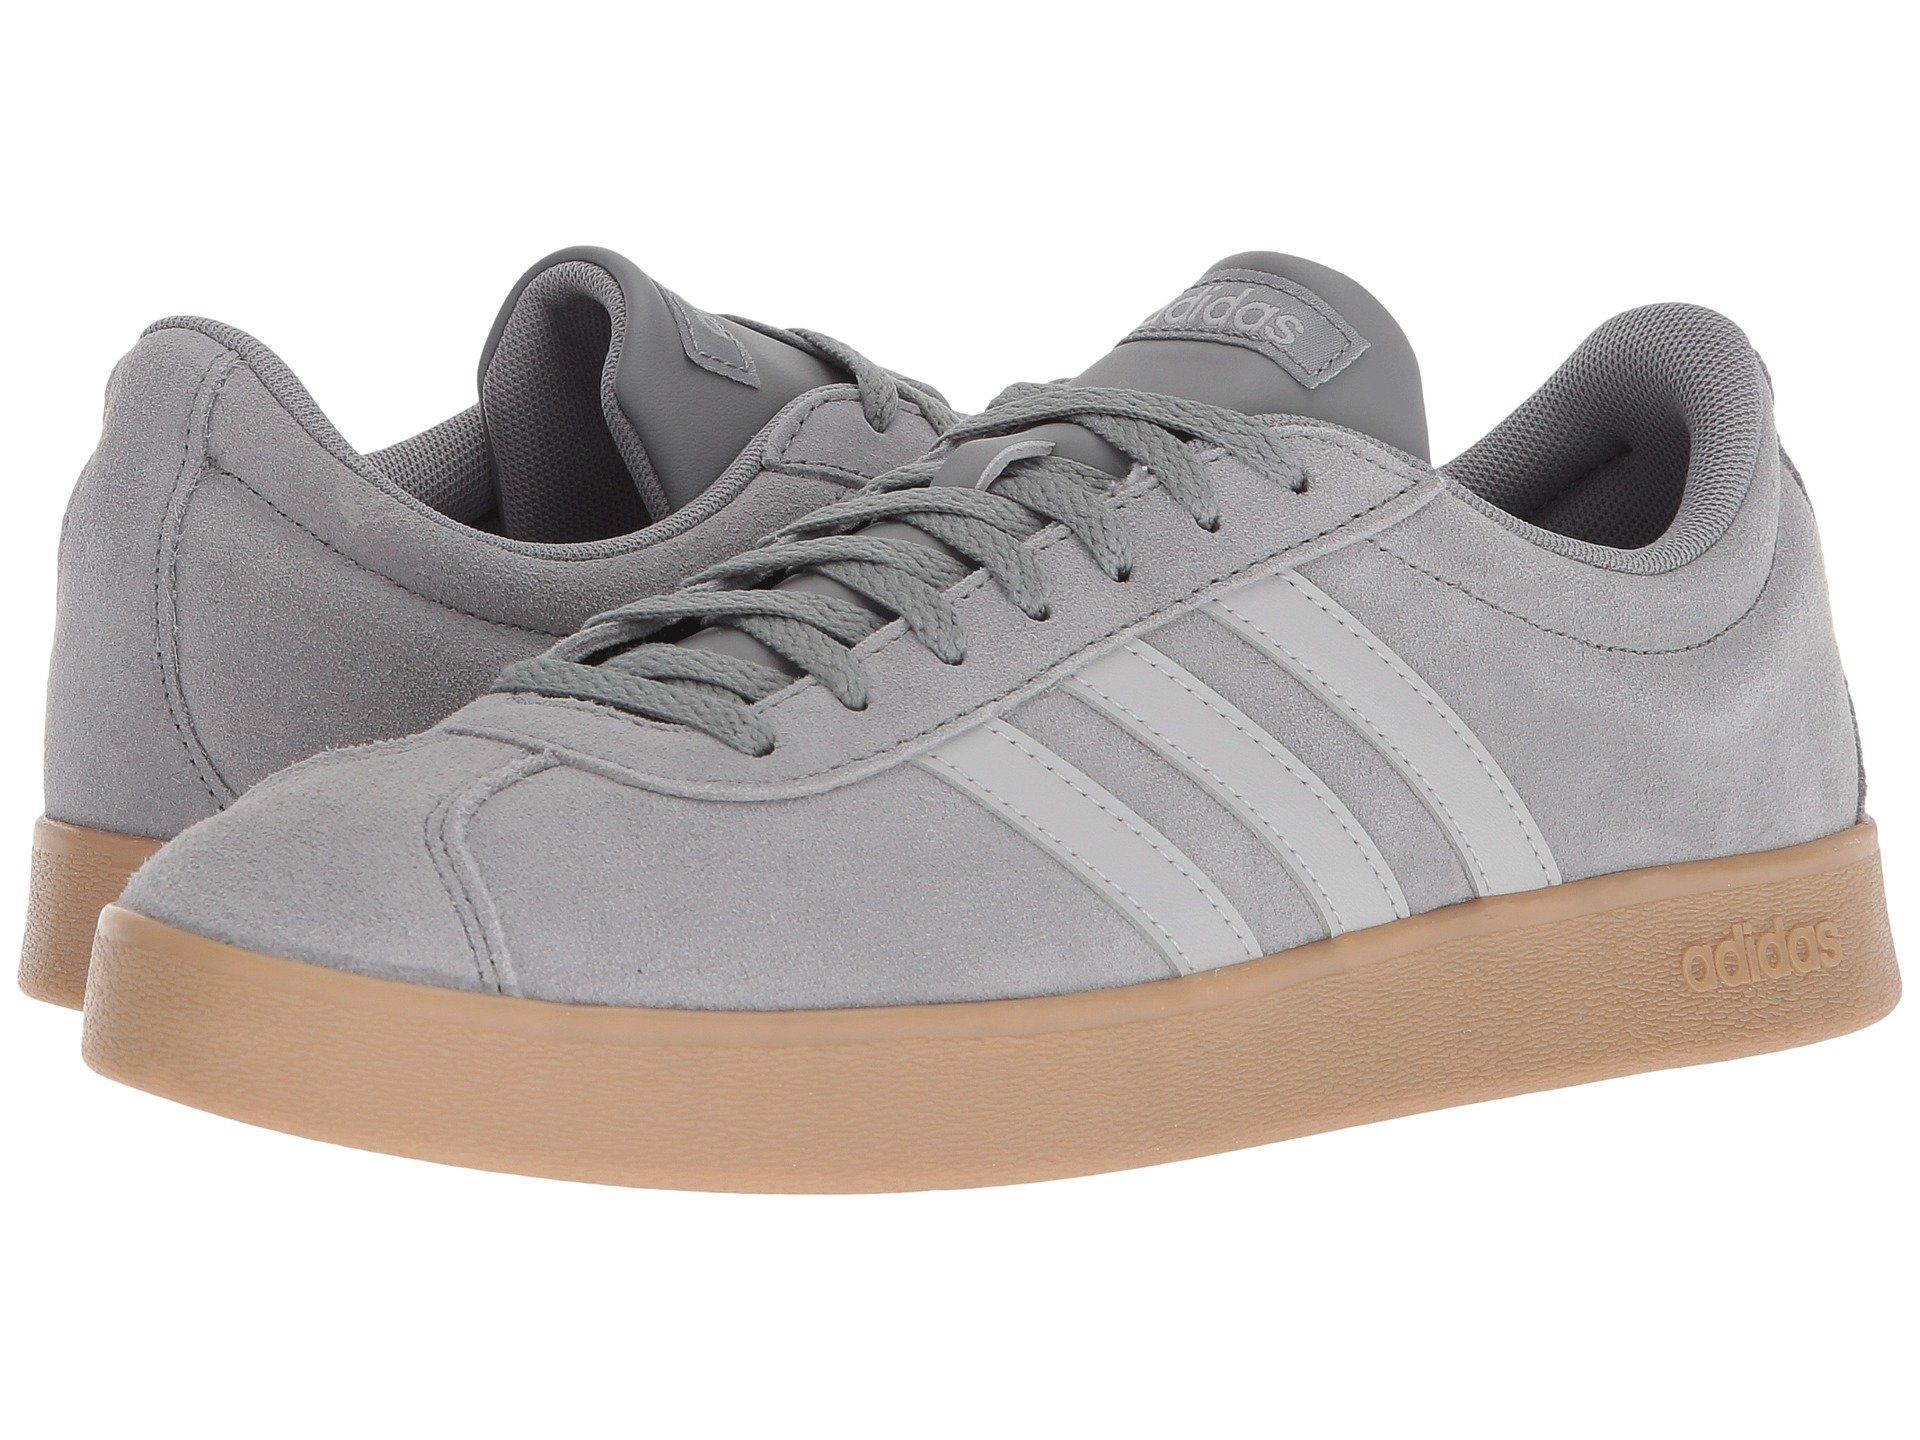 563d5bb9d527 ADIDAS ORIGINALS VL Court 2.0.  adidasoriginals  shoes